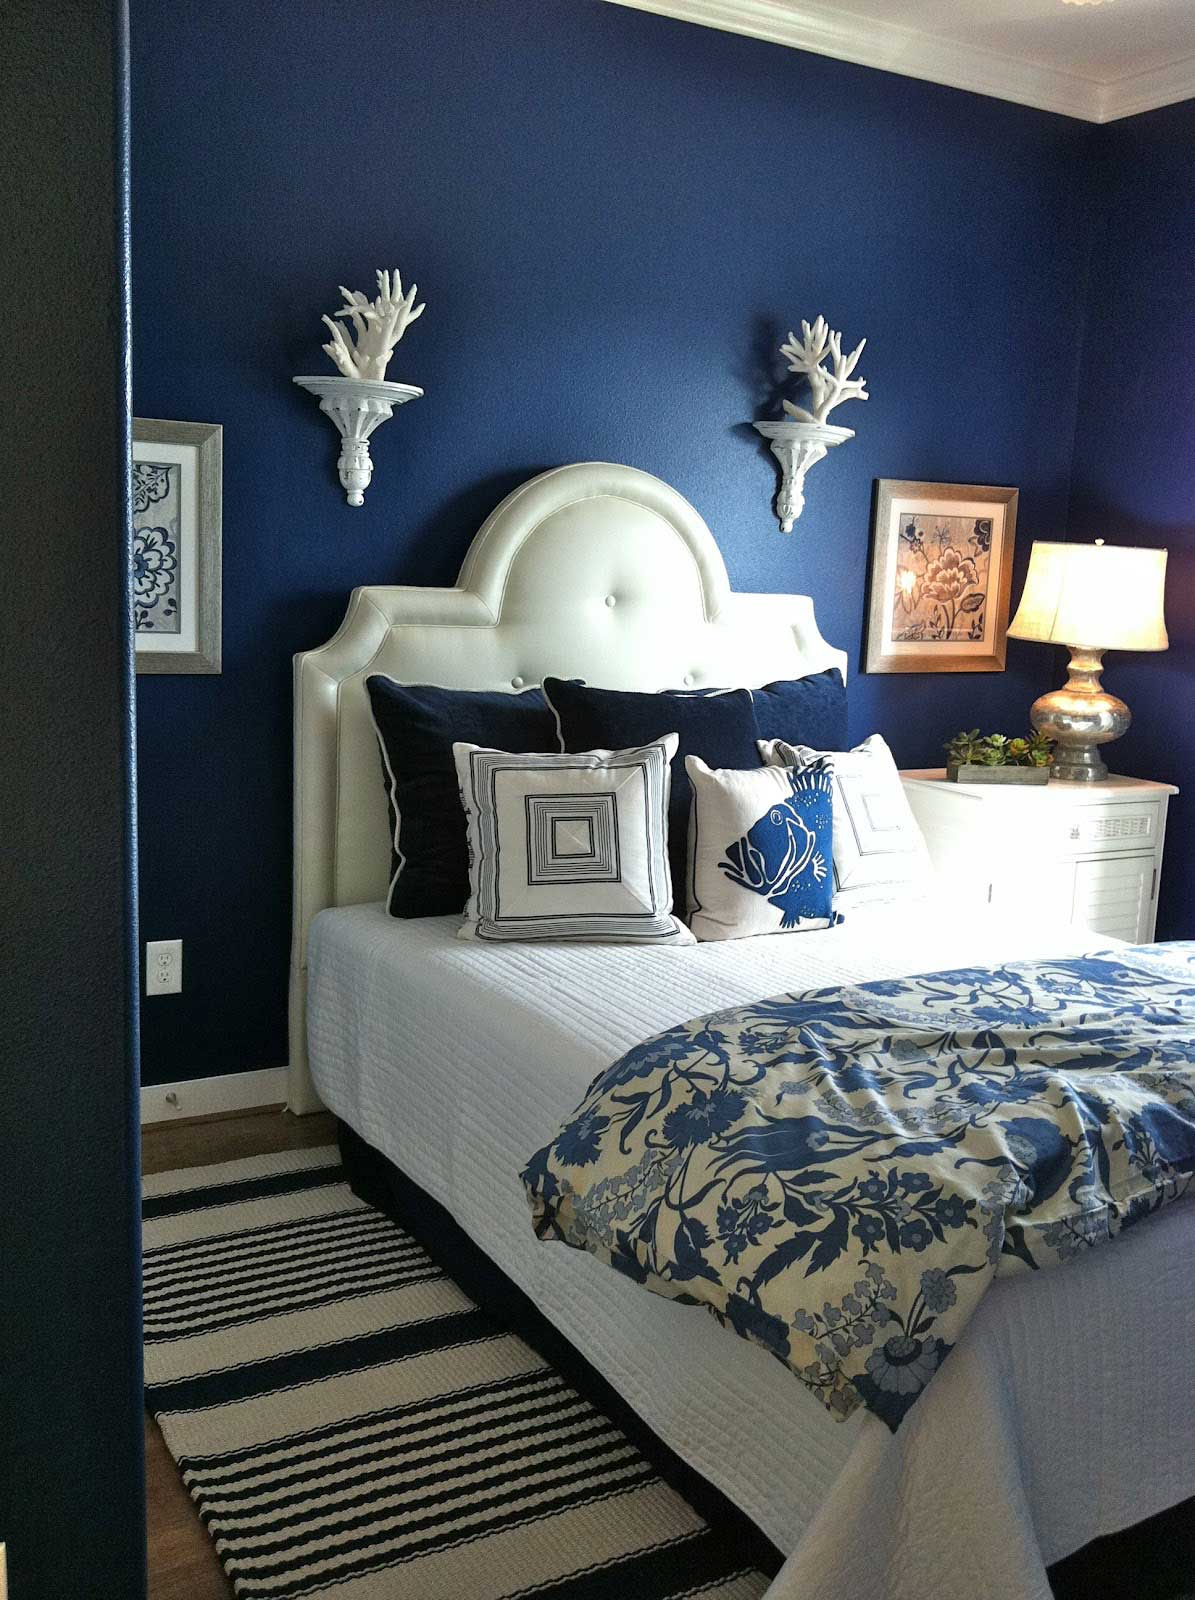 Bedroom design ideas for women blue - Dark Blue Bedroom Design